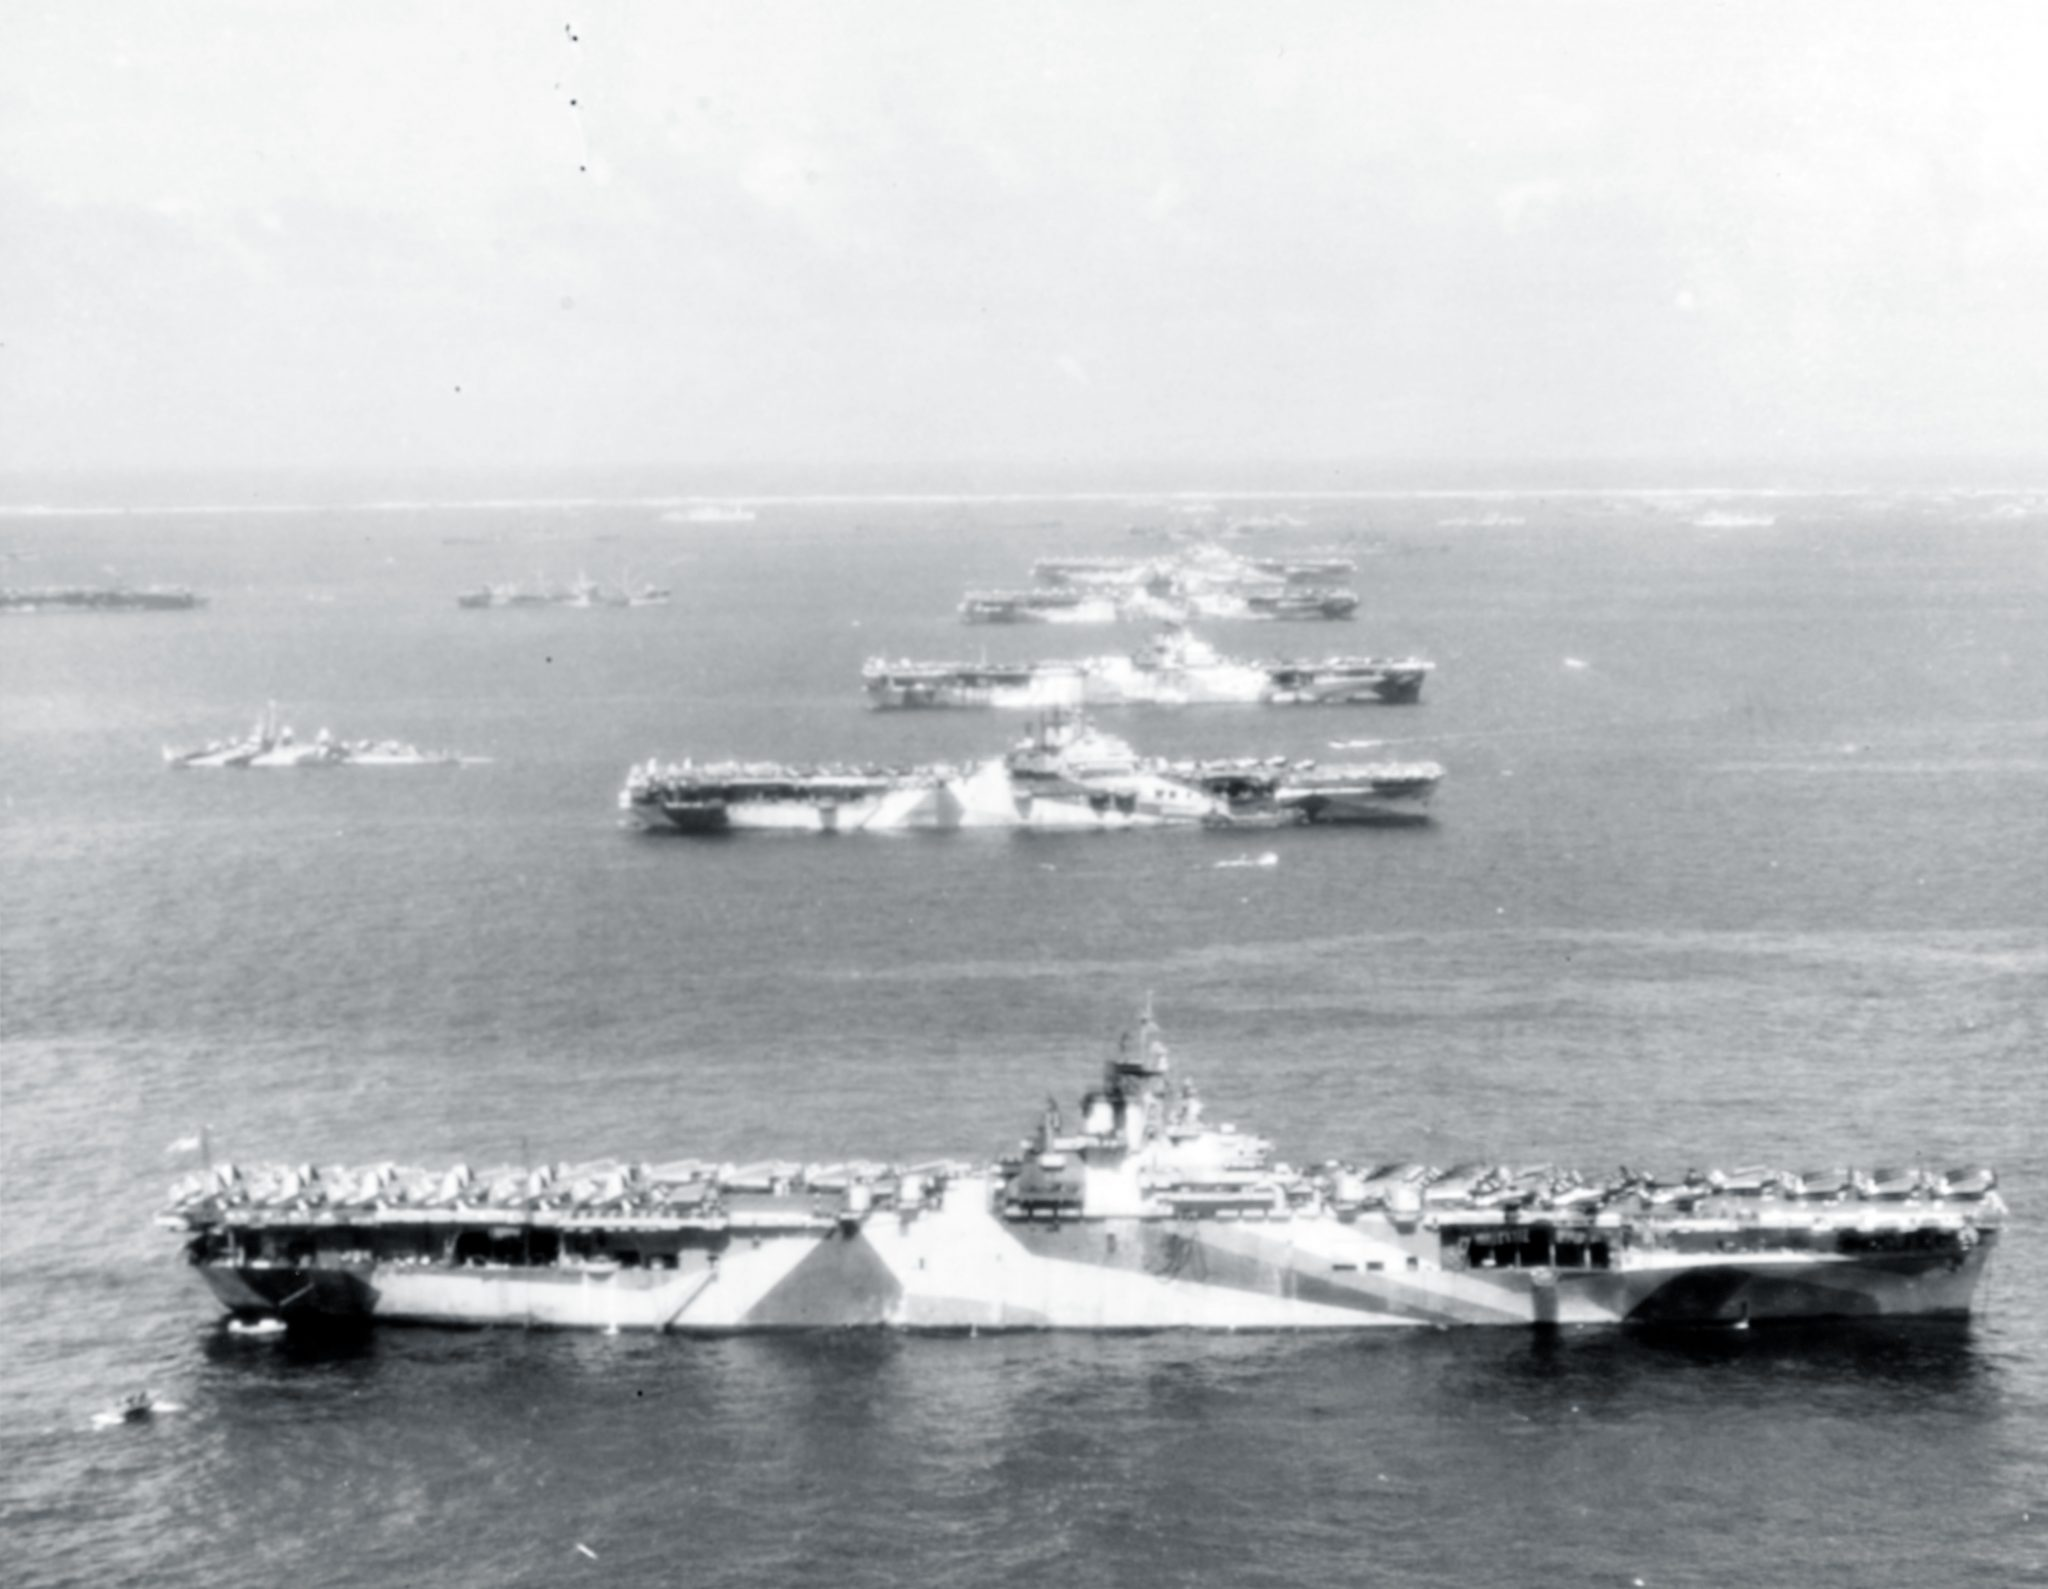 """""""Murderers' Row"""" Third Fleet aircraft carriers at anchor in Ulithi Atoll, 8 December 1944, during a break from operations in the Philippines area. The carriers are (from front to back): USS Wasp (CV-18), USS Yorktown (CV-10), USS Hornet (CV-12), USS Hancock (CV-19) and USS Ticonderoga (CV-14). Wasp, Yorktown, and Ticonderoga are all painted in camouflage Measure 33, Design 10a. Photographed from a USS Ticonderoga plane. 80-G-294131"""